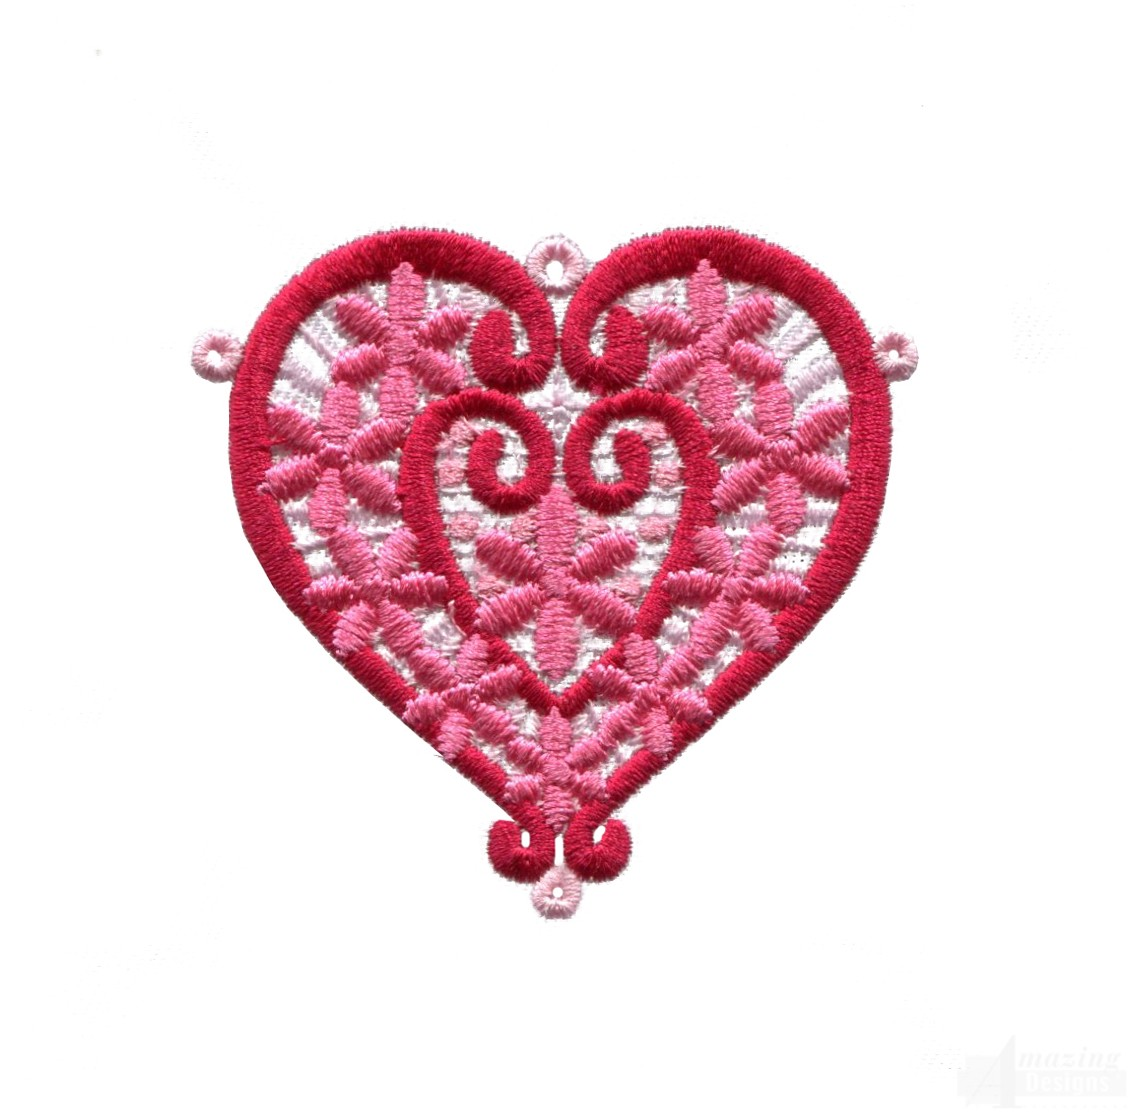 Lhrts heart embroidery design